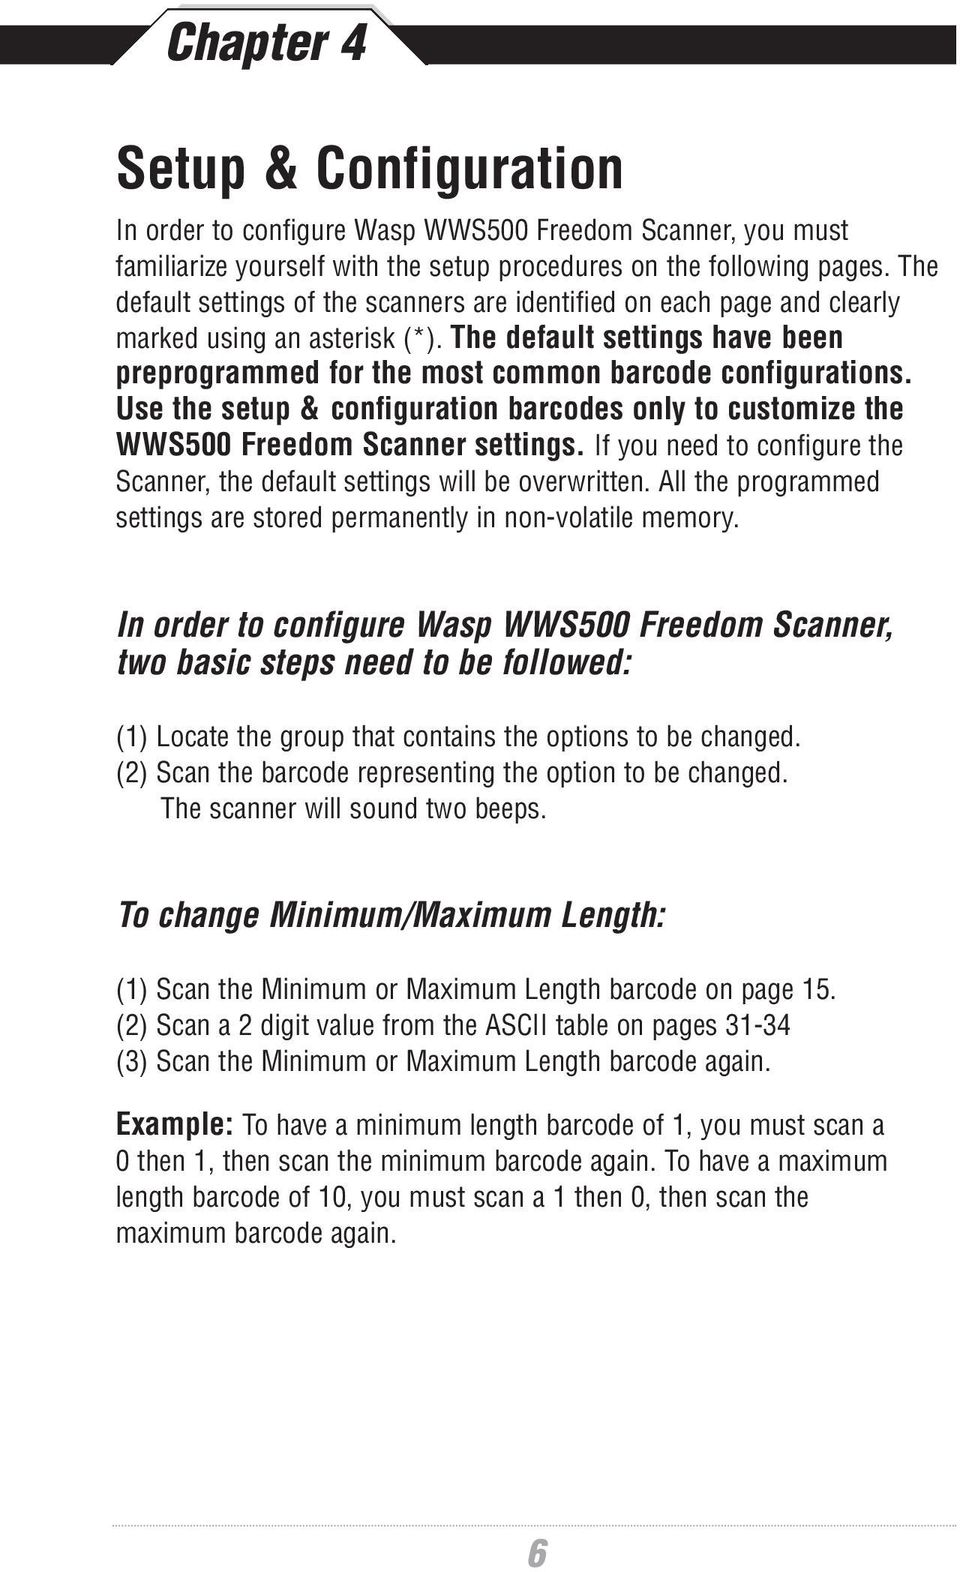 Barcode Scanning Made Easy  WWS500 Programming Guide - PDF